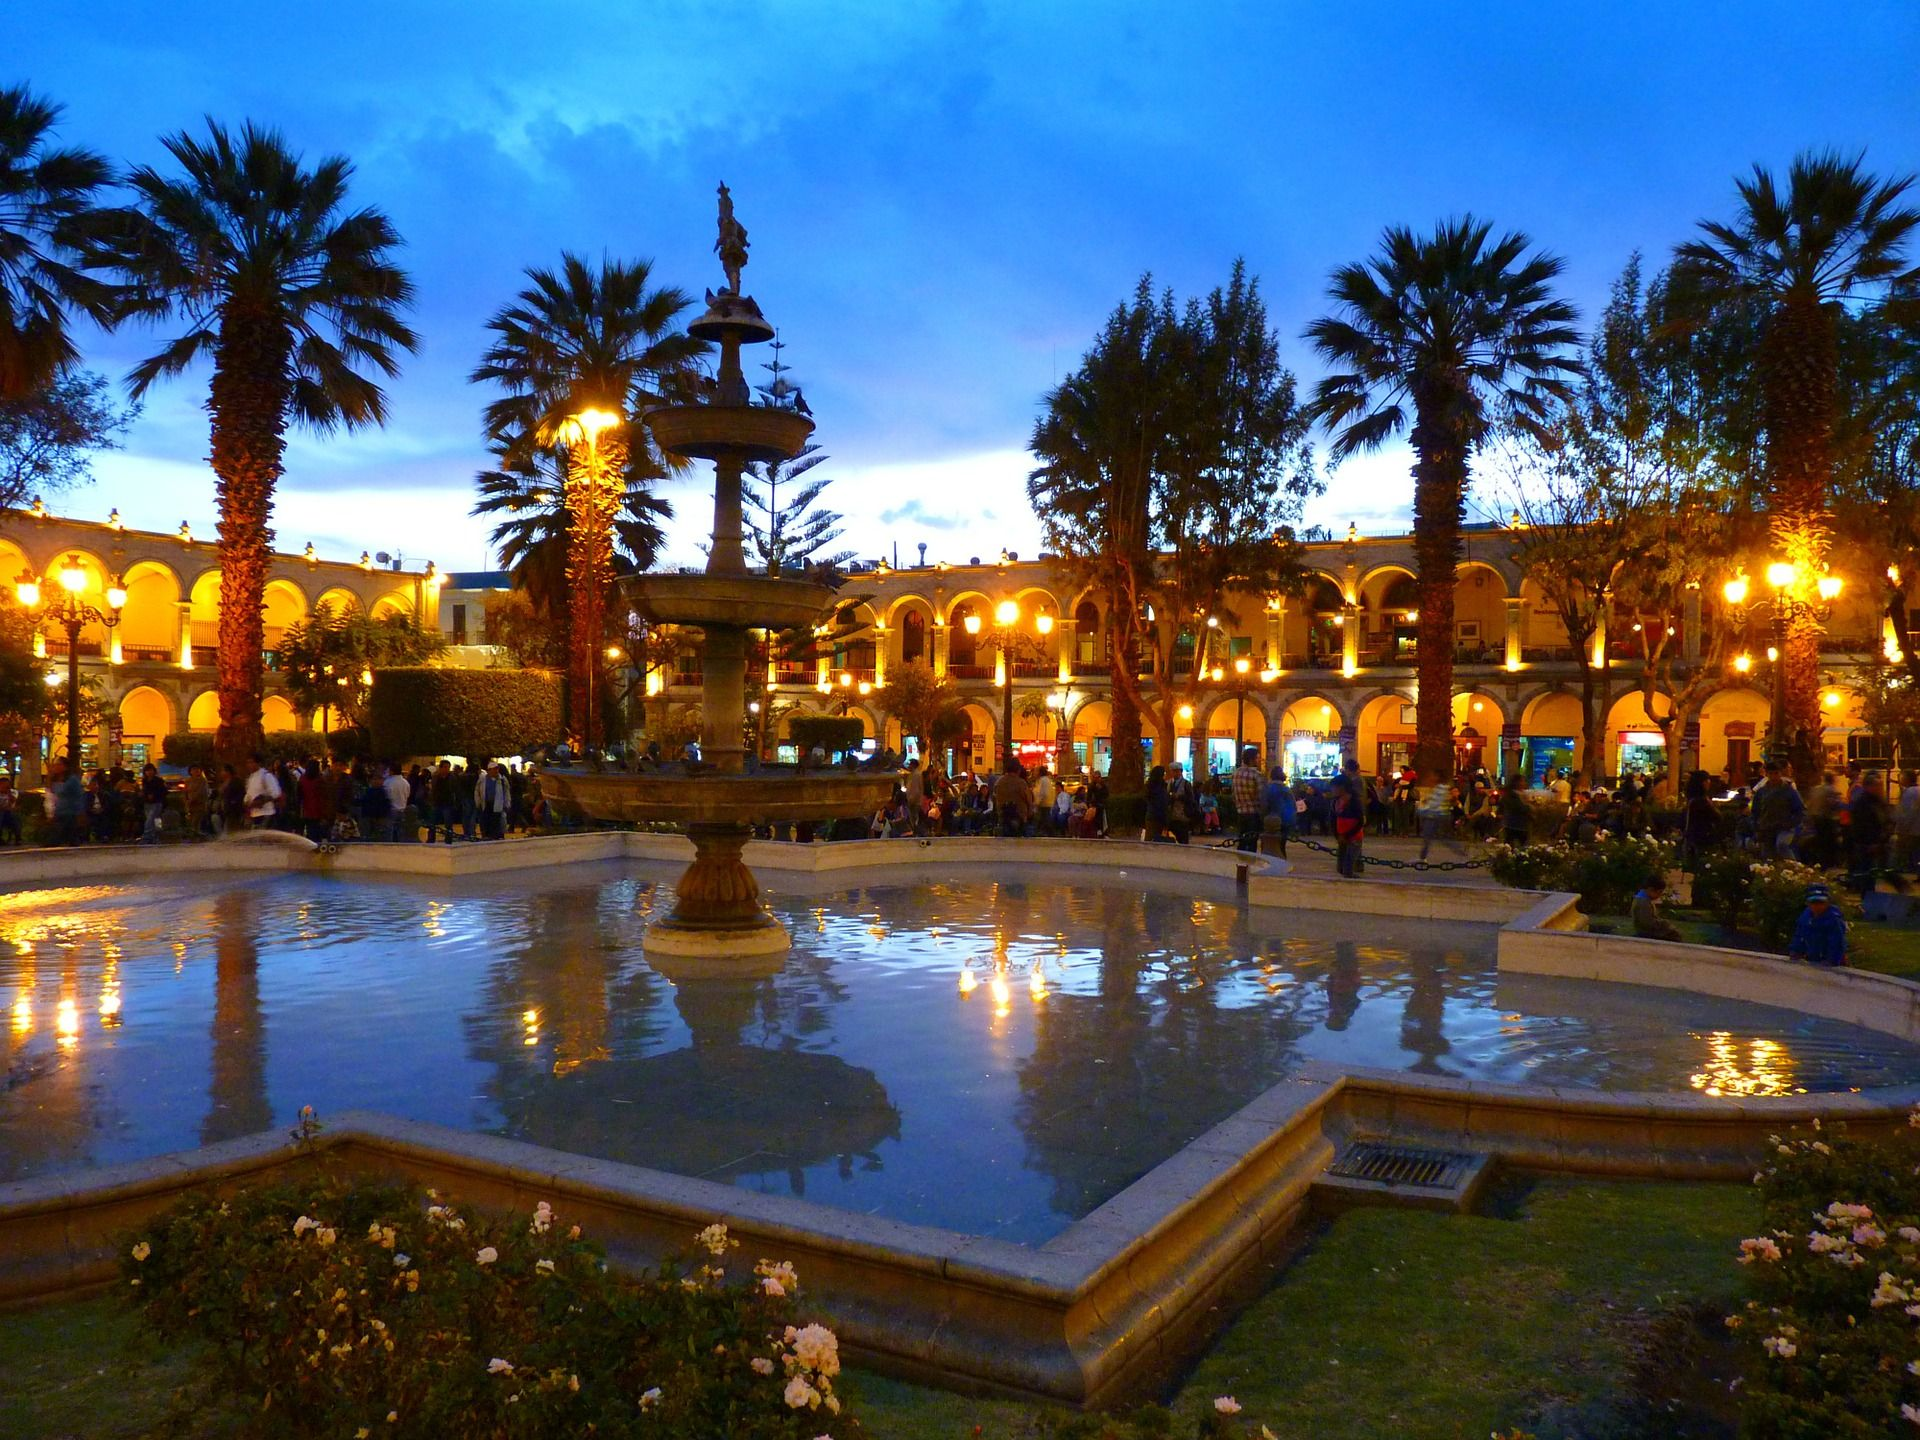 Dusk photo of the city center in Arequipa, Peru